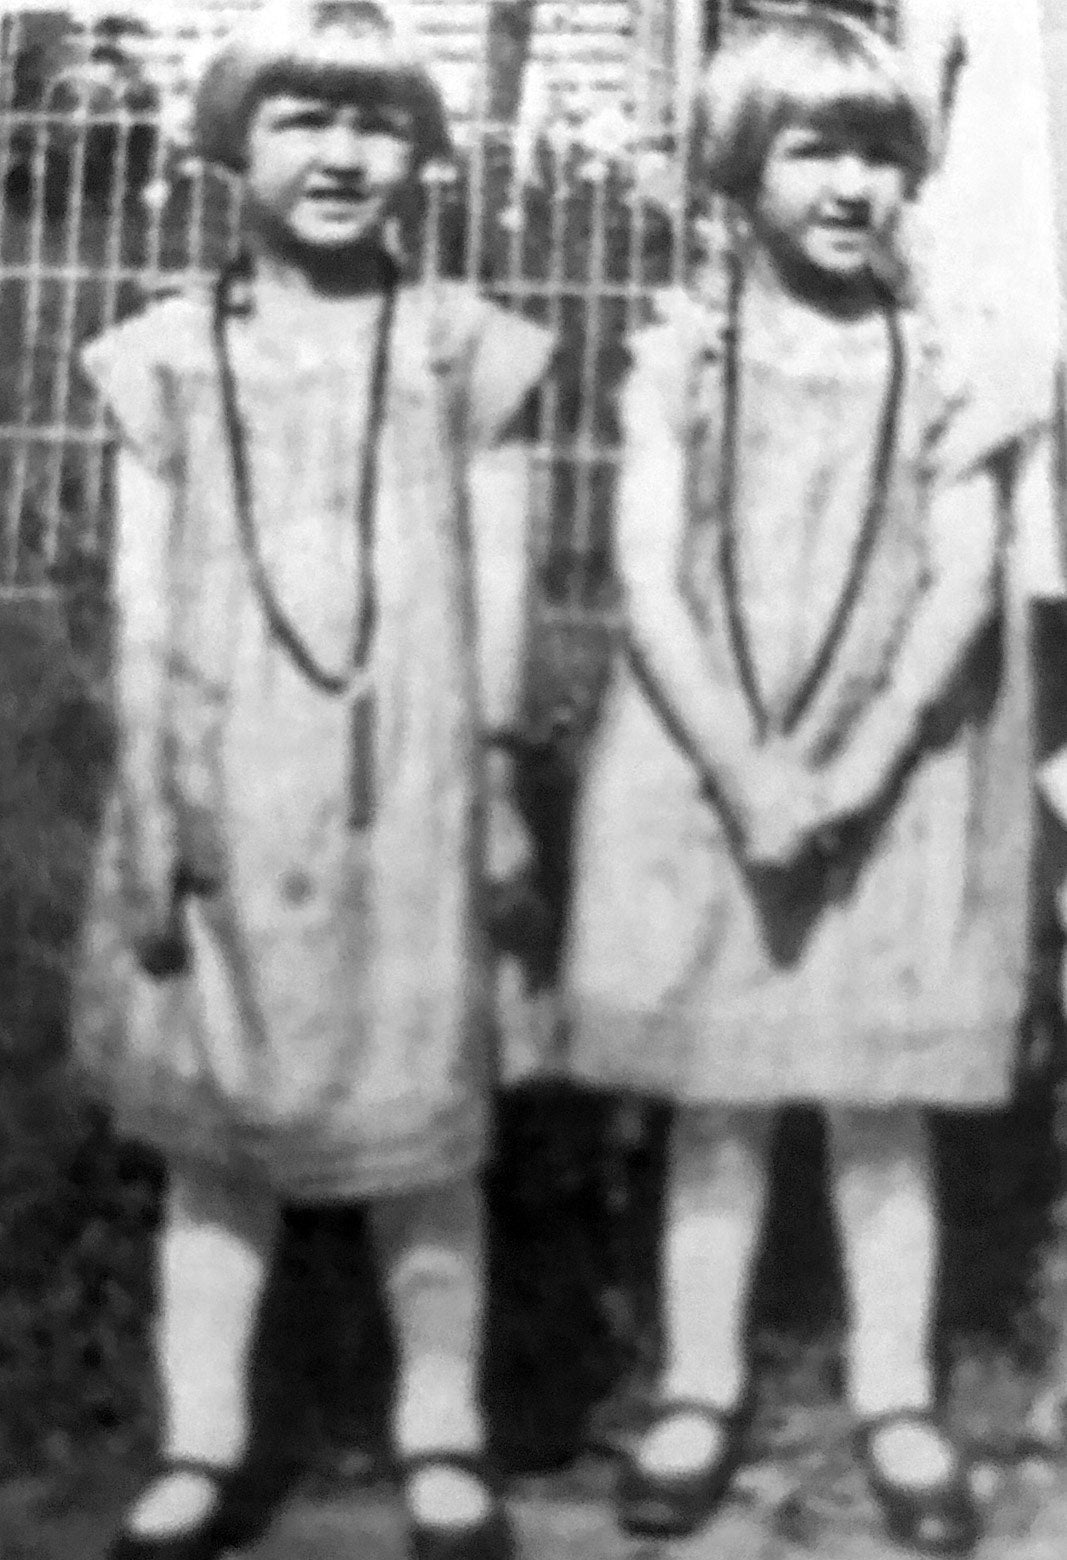 Two girls, Irene and Arlene, in matching dresses.